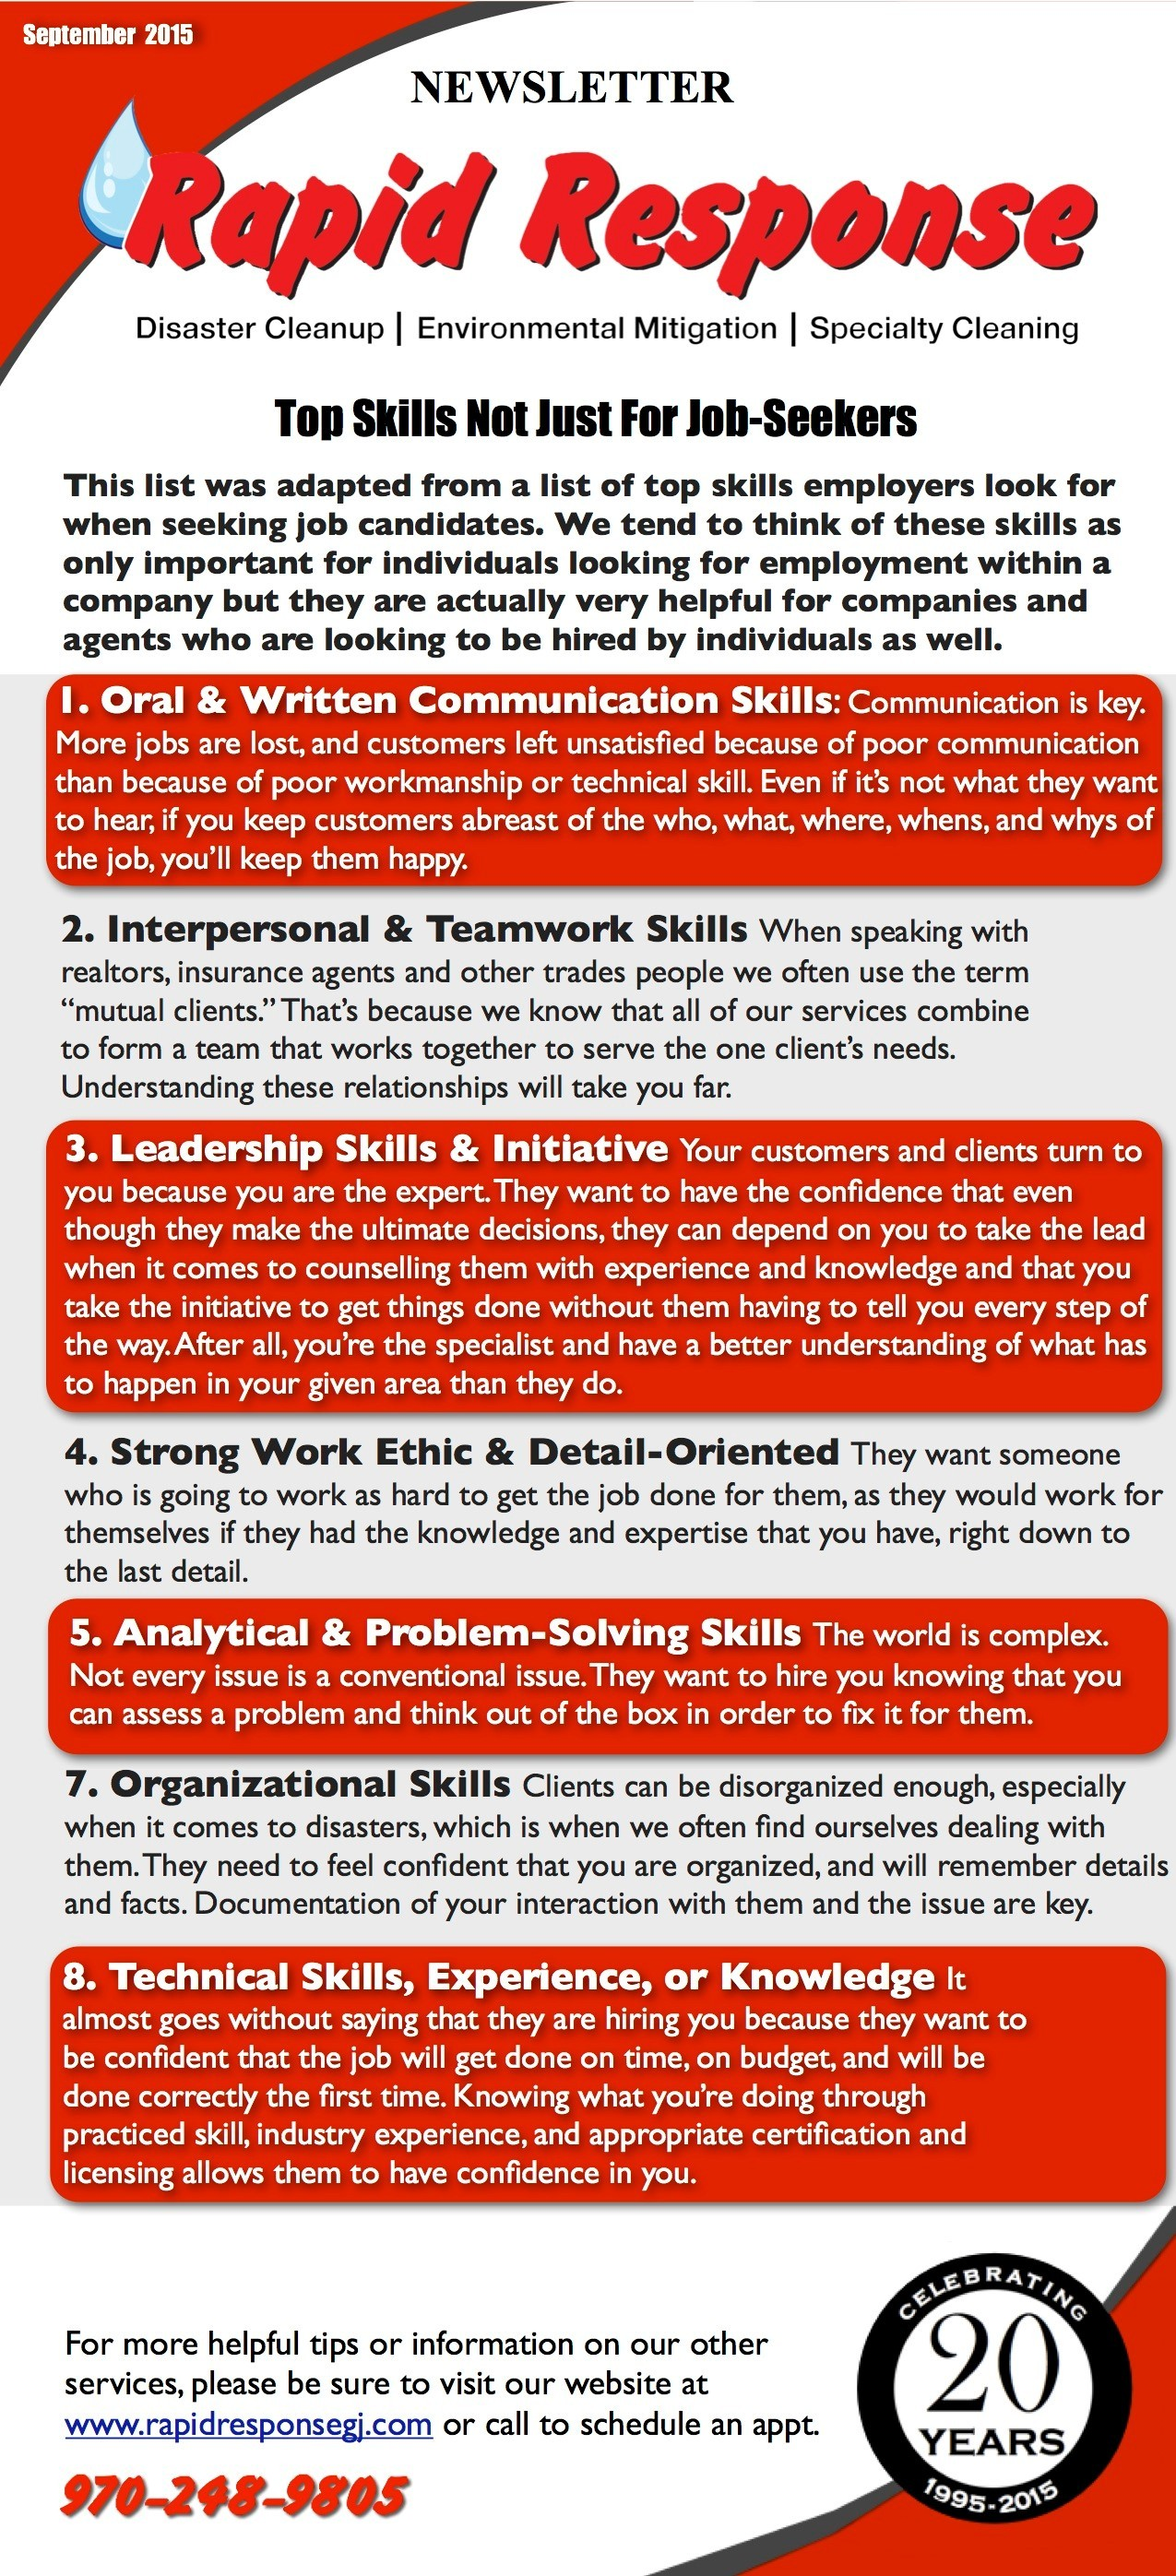 September Newsletter-Top Skills are Not Just for Job Seekers